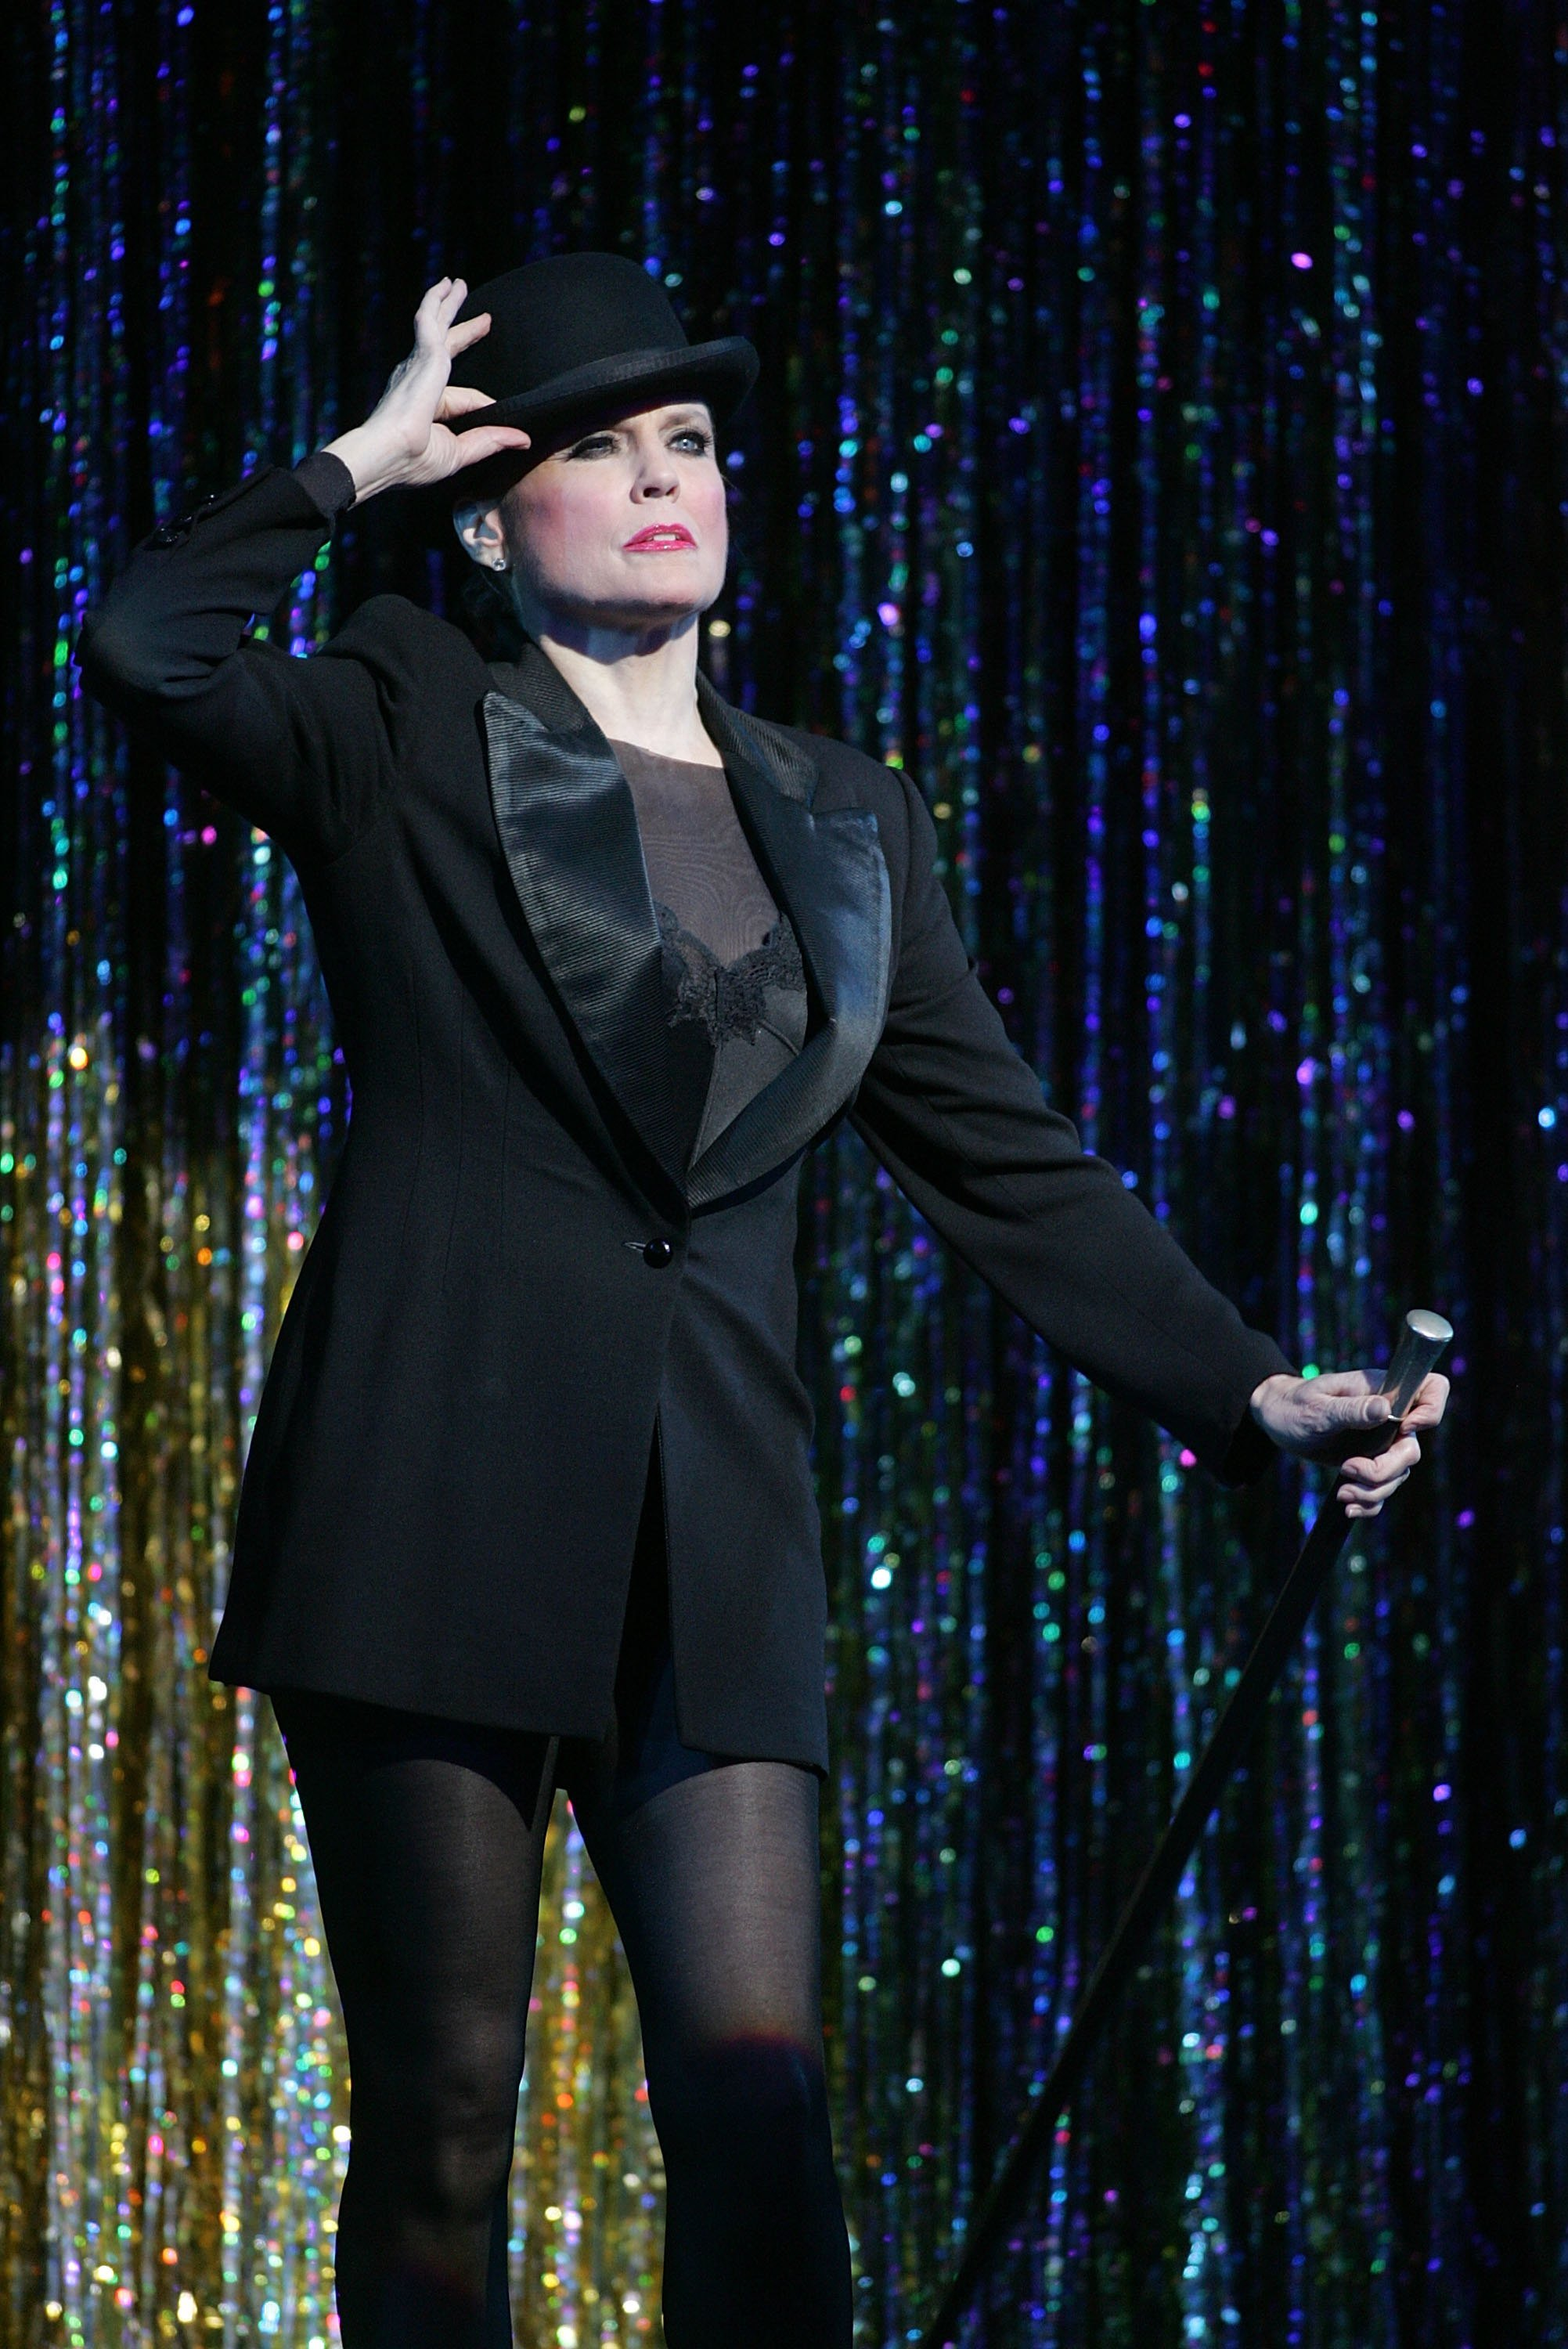 """Ann Reinking performs in """"Chicago"""" on November 14, 2006, in New York City. 